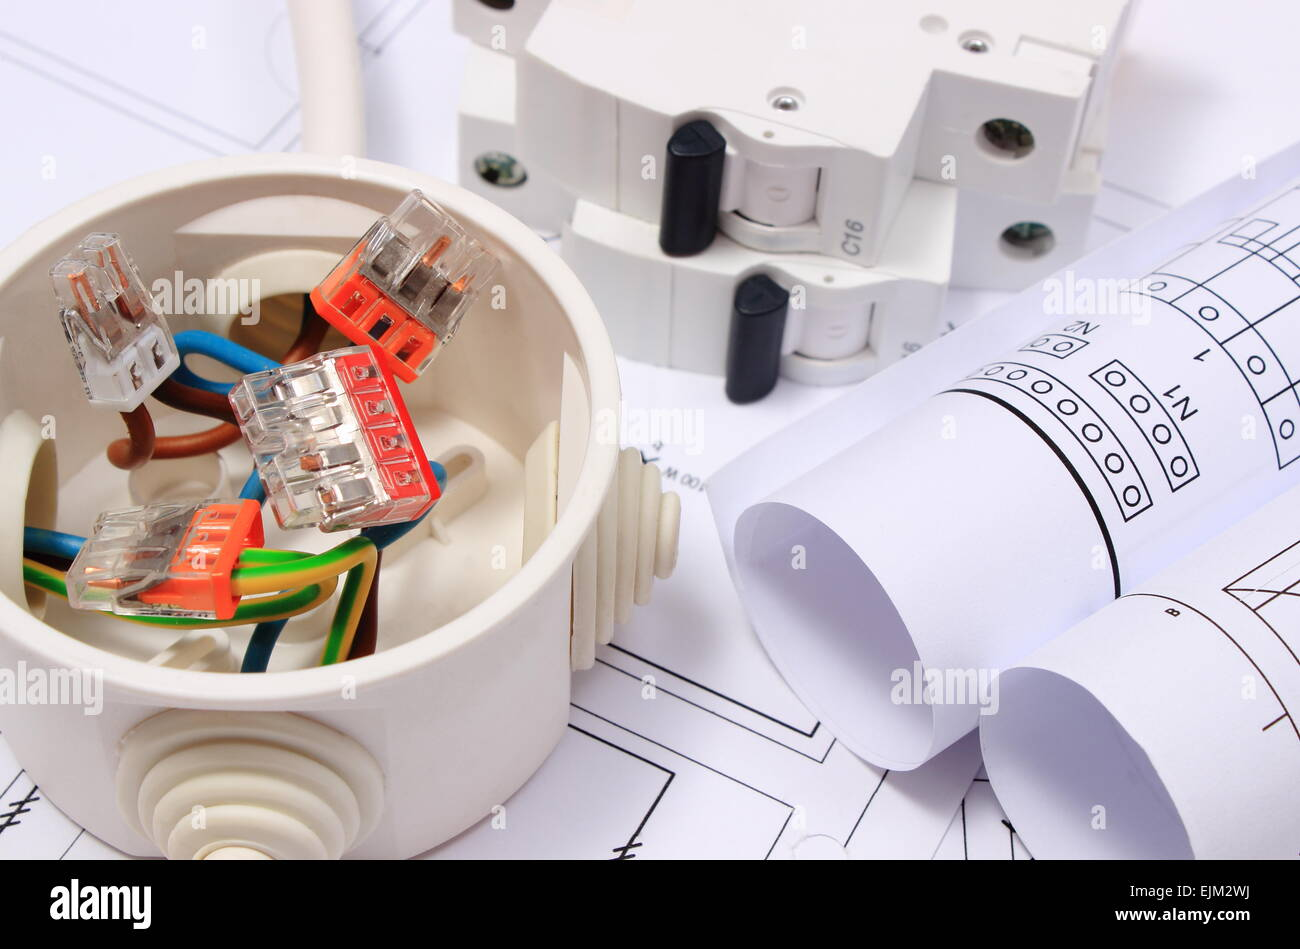 Rolls Electrical Diagrams Electric Fuse Stock Photos Wj Box Copper Wire Connections In Of And On Construction